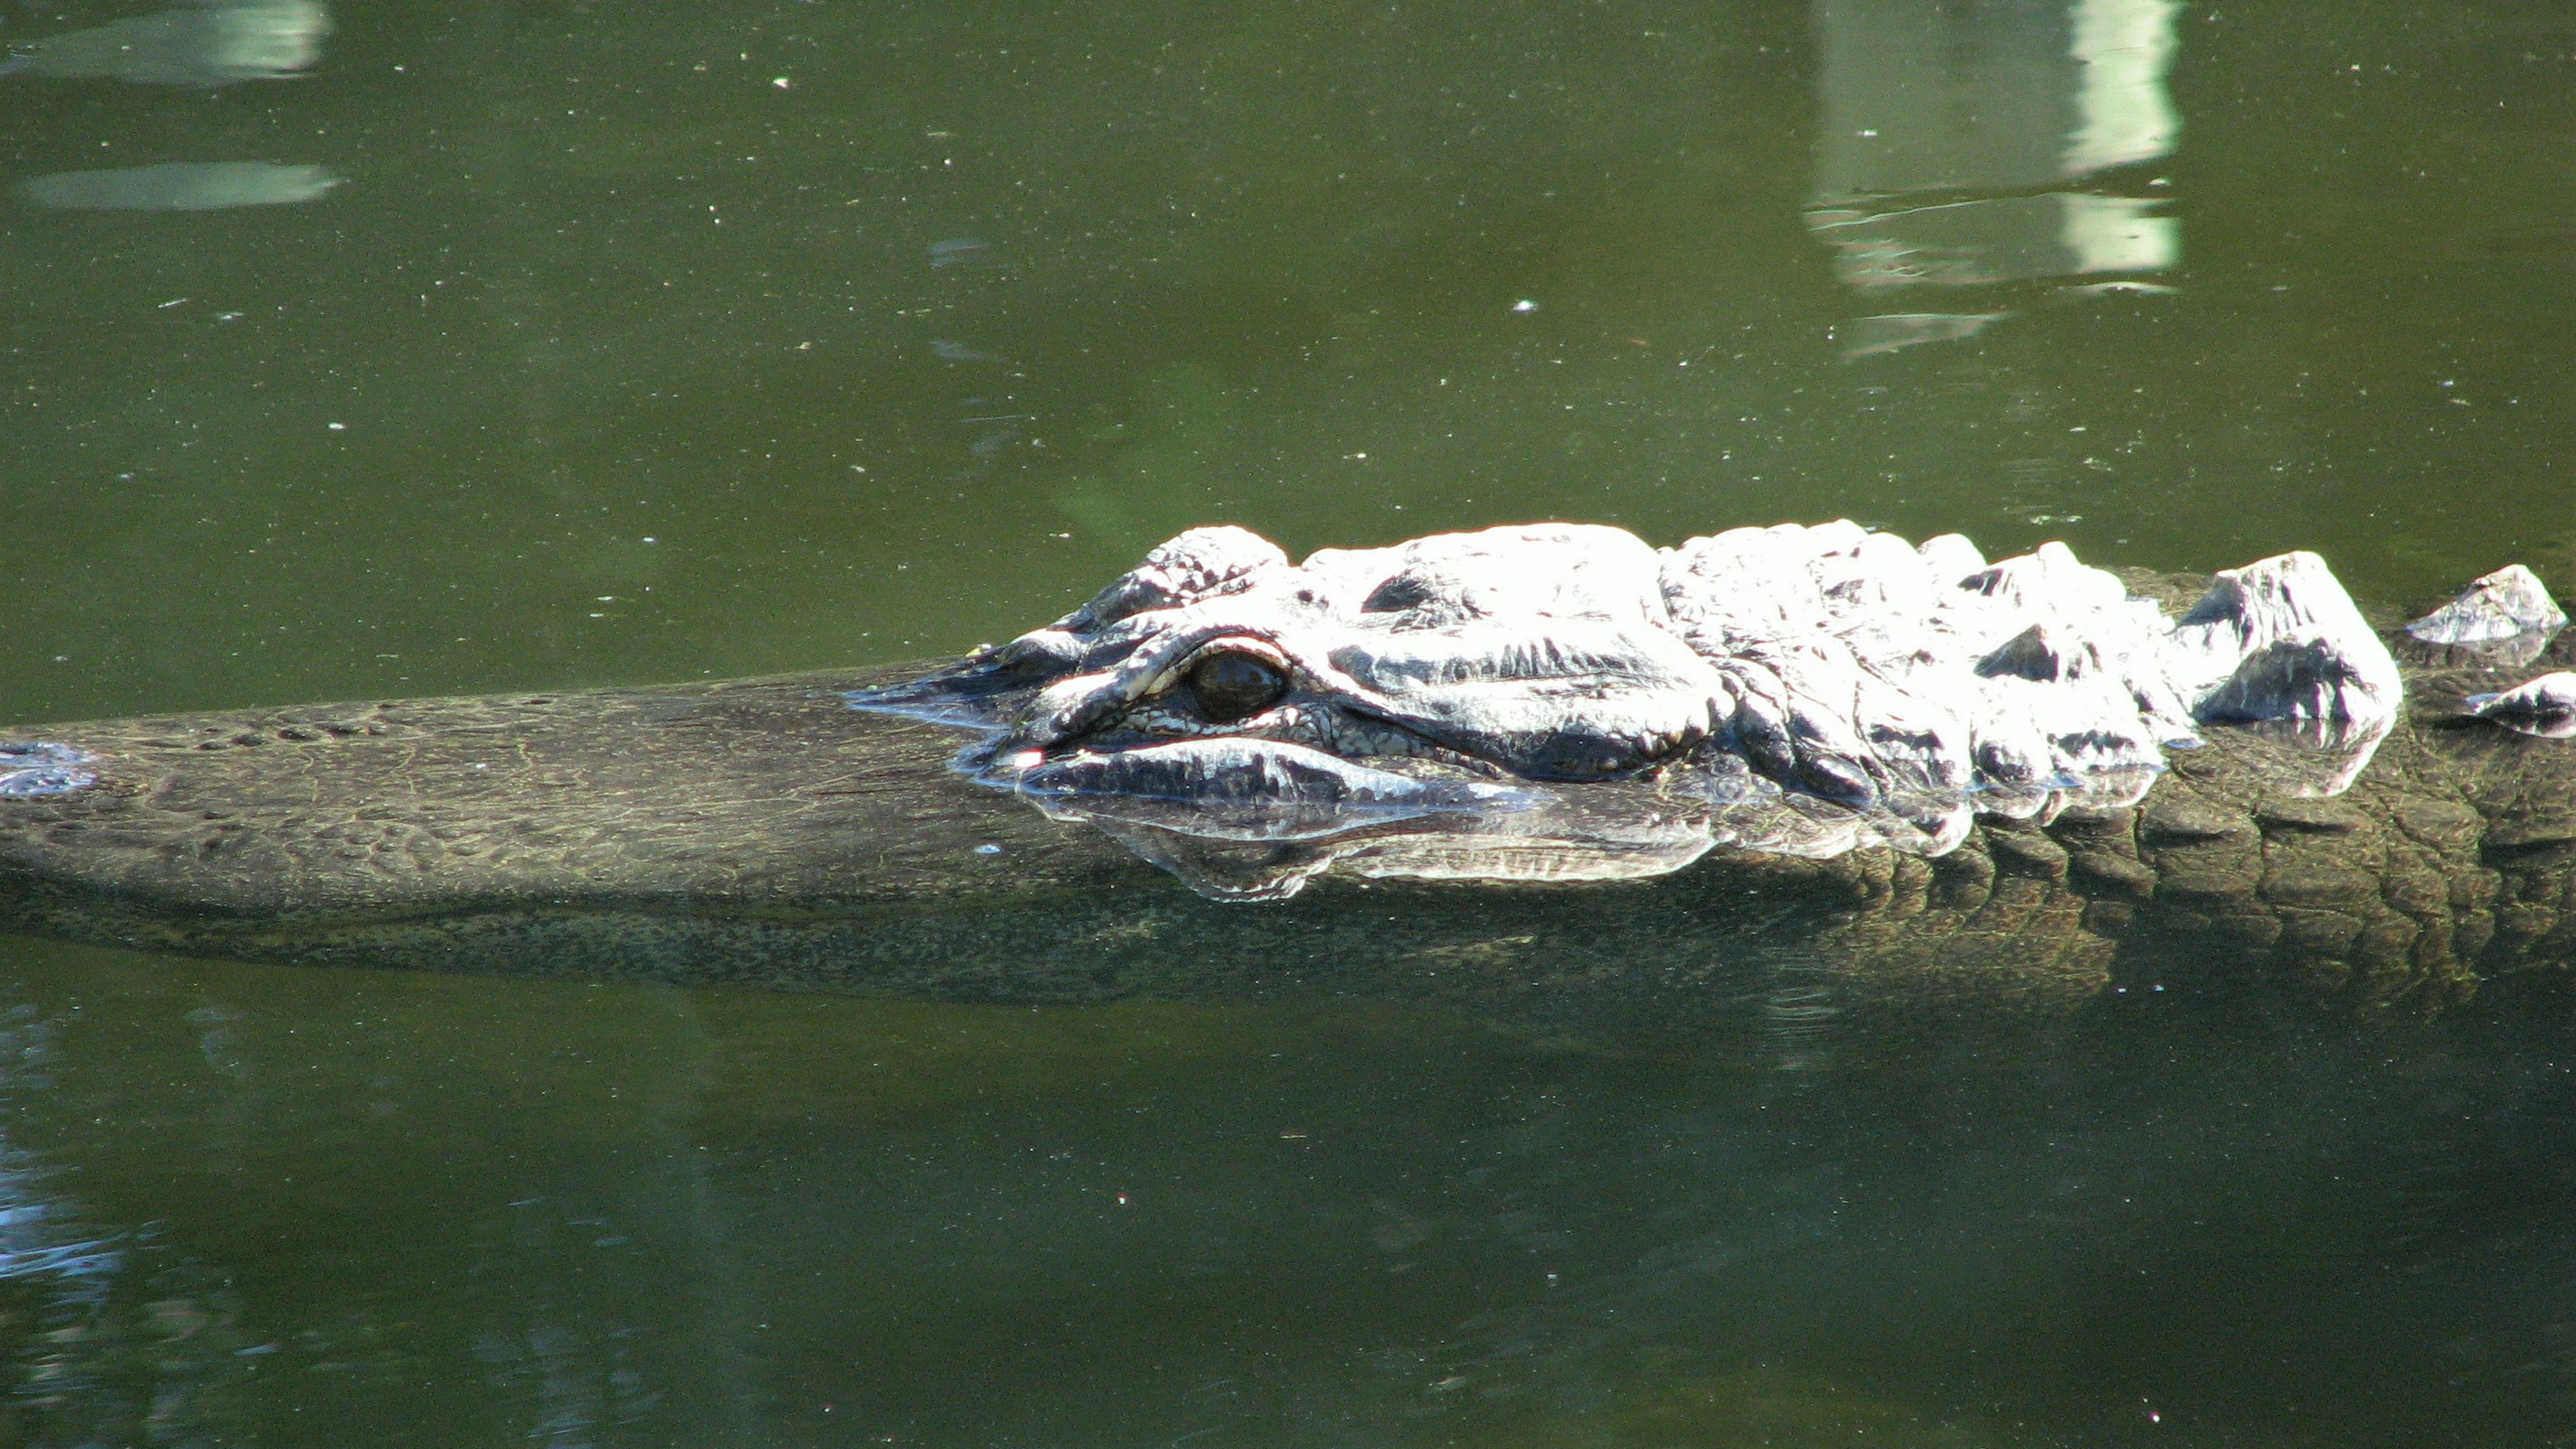 American alligator partially submerged.